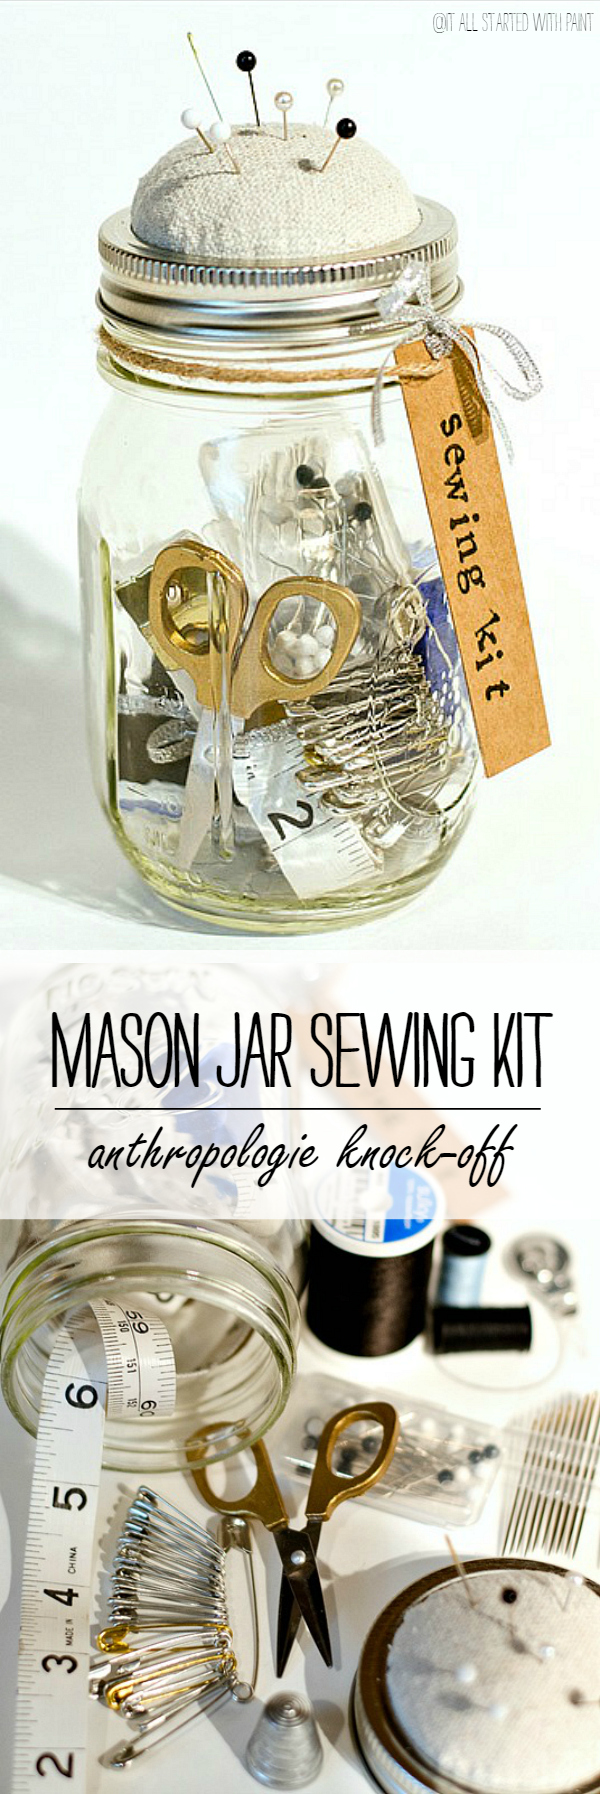 Mason Jar Craft: Anthropologie Sewing Kit